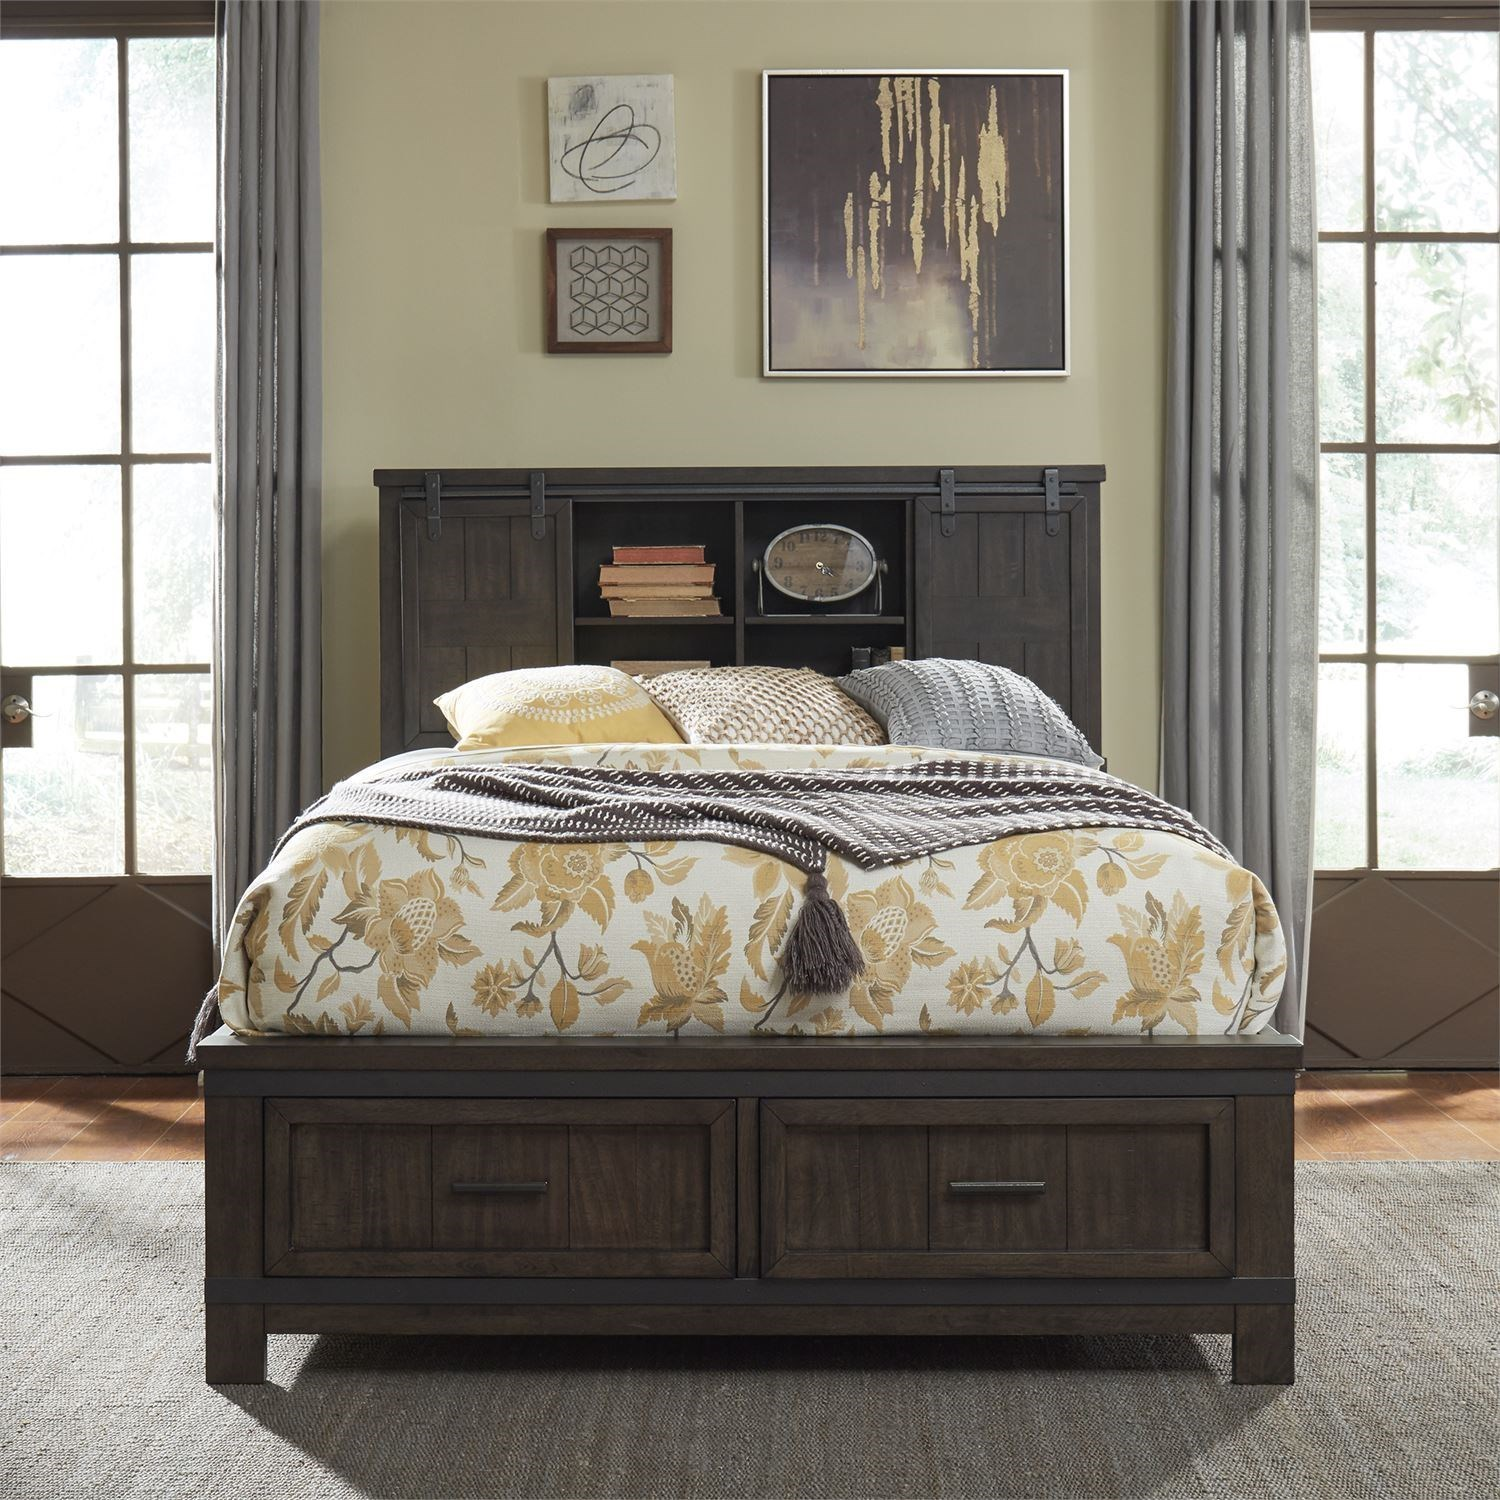 Rustic King Bookcase Bed with Footboard Storage